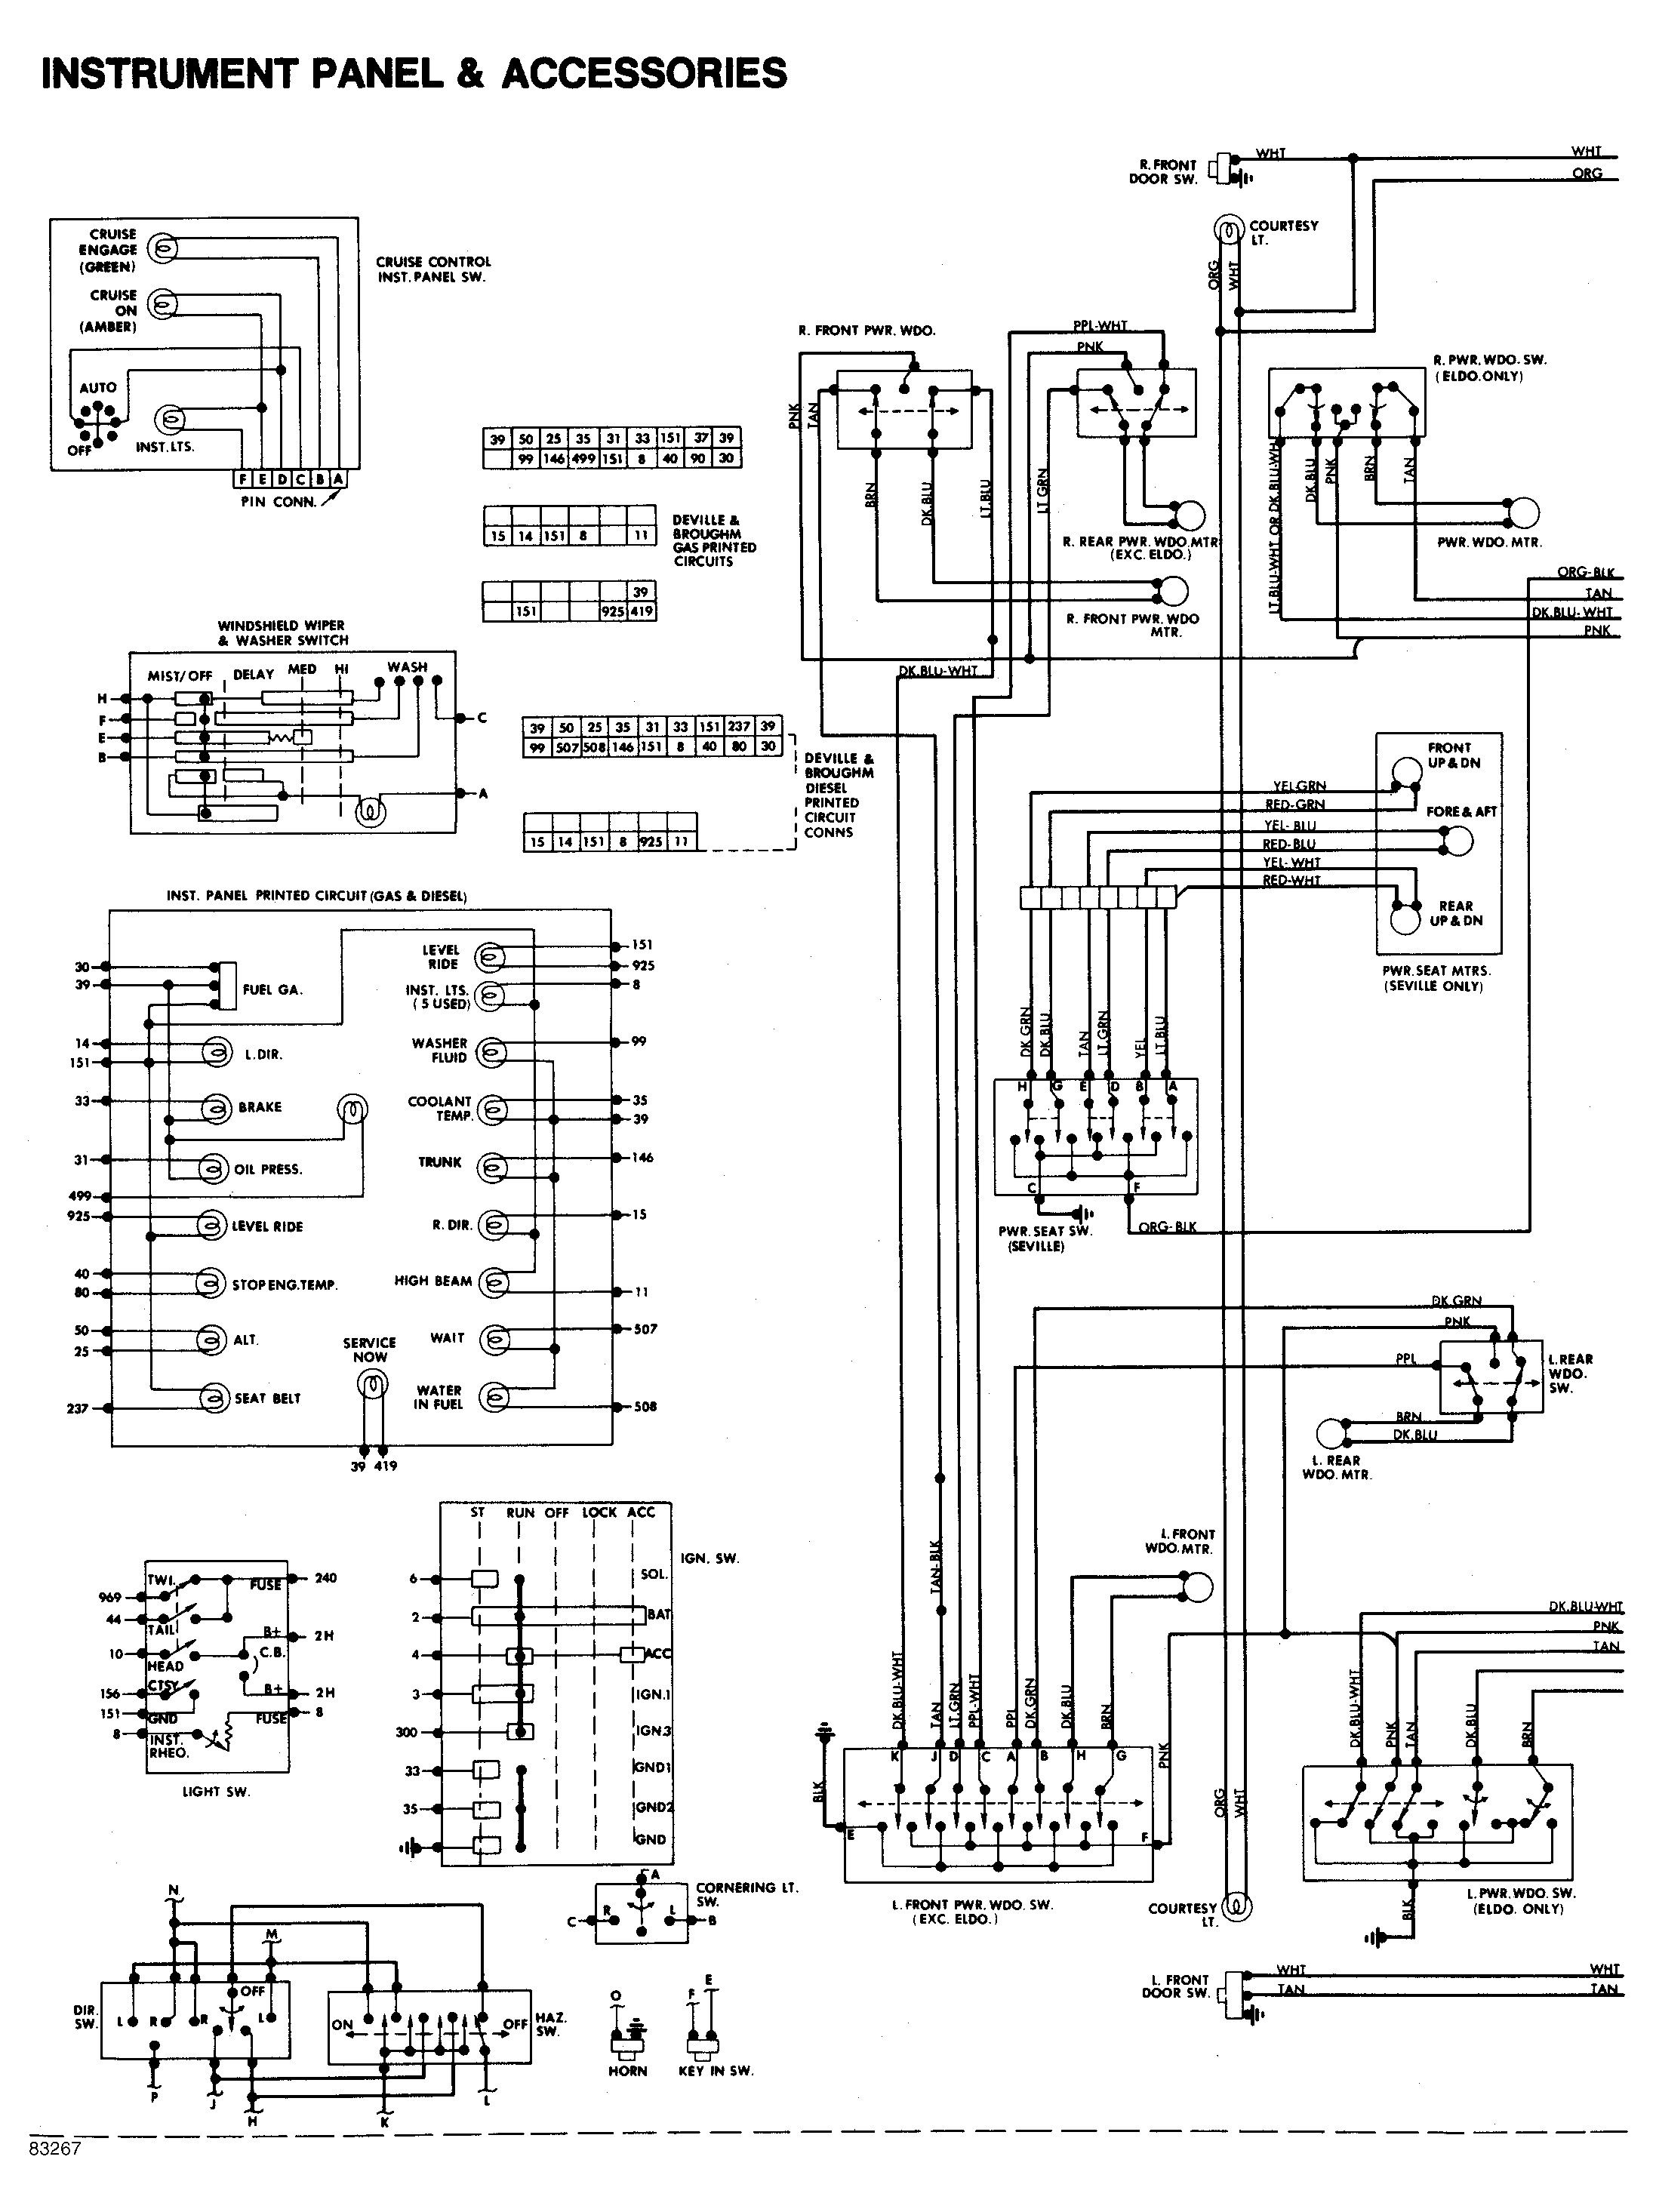 Engine Diagram Moreover Bmw 325i Wiring Diagram On Daewoo Lanos 2001